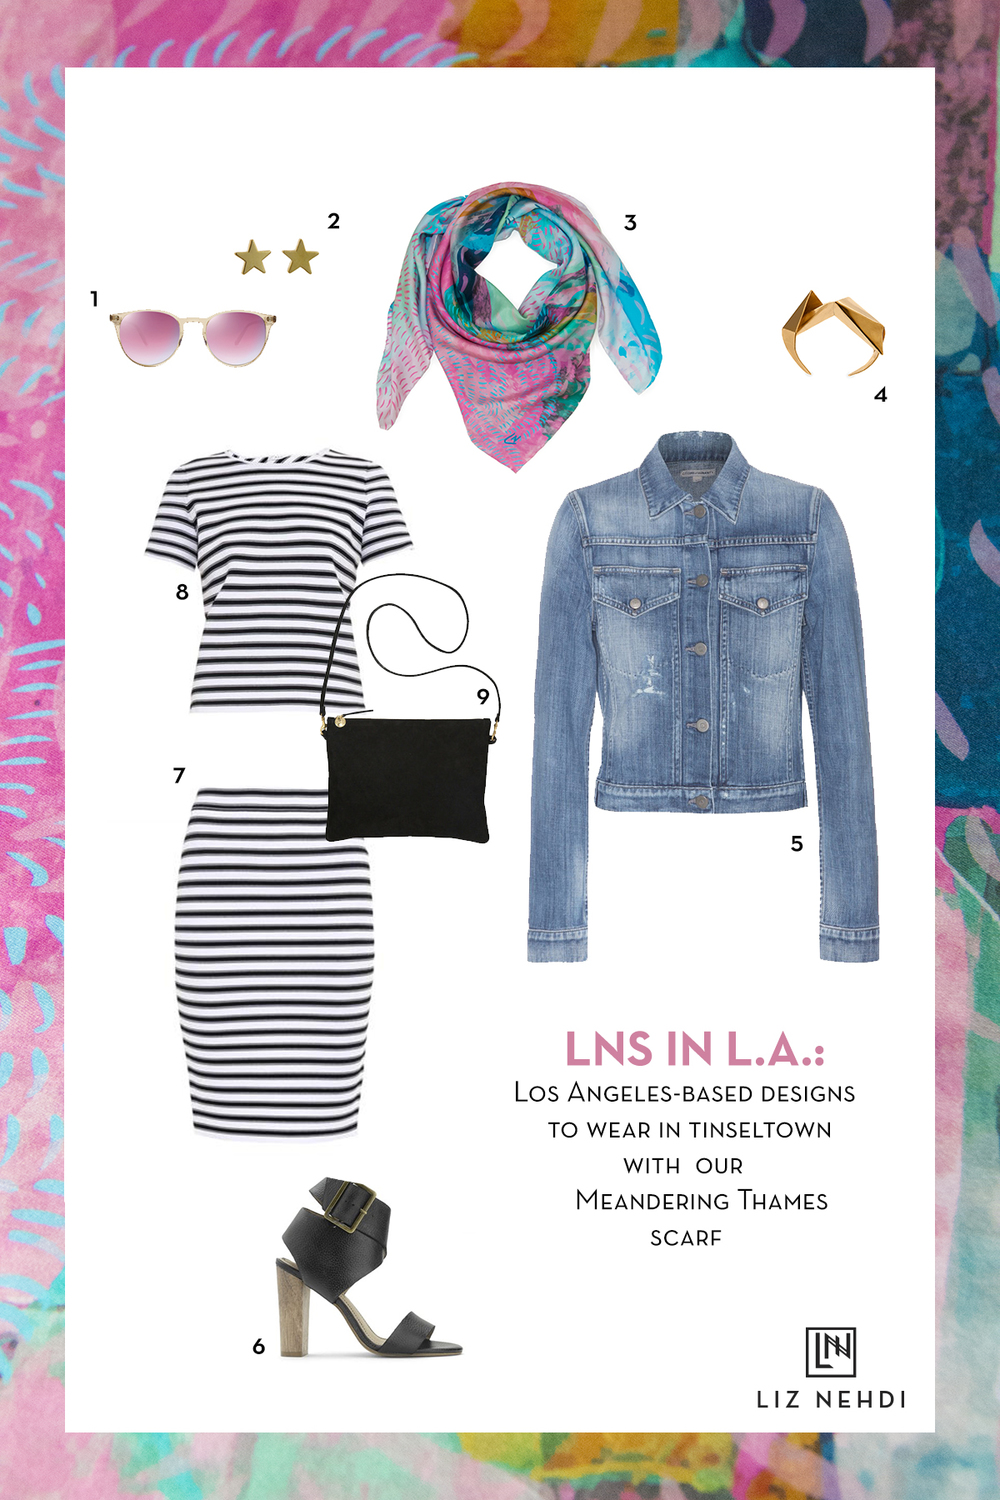 LNS in L.A. collage by Liz Nehdi Studio, 2015. See below for product info